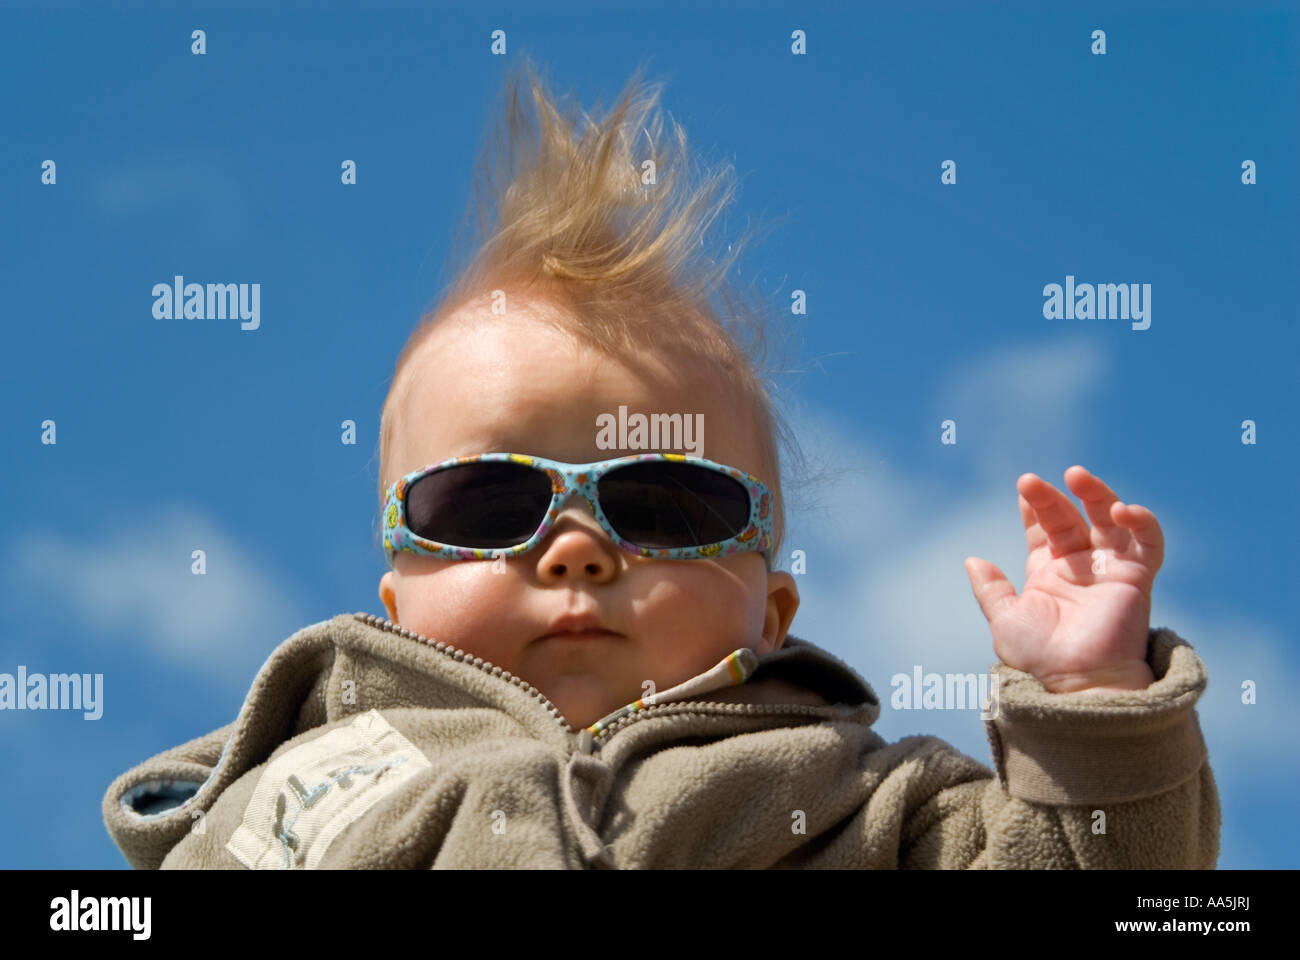 Humorous horizontal close up of a 6-month old baby boy posing for photographs. - Stock Image